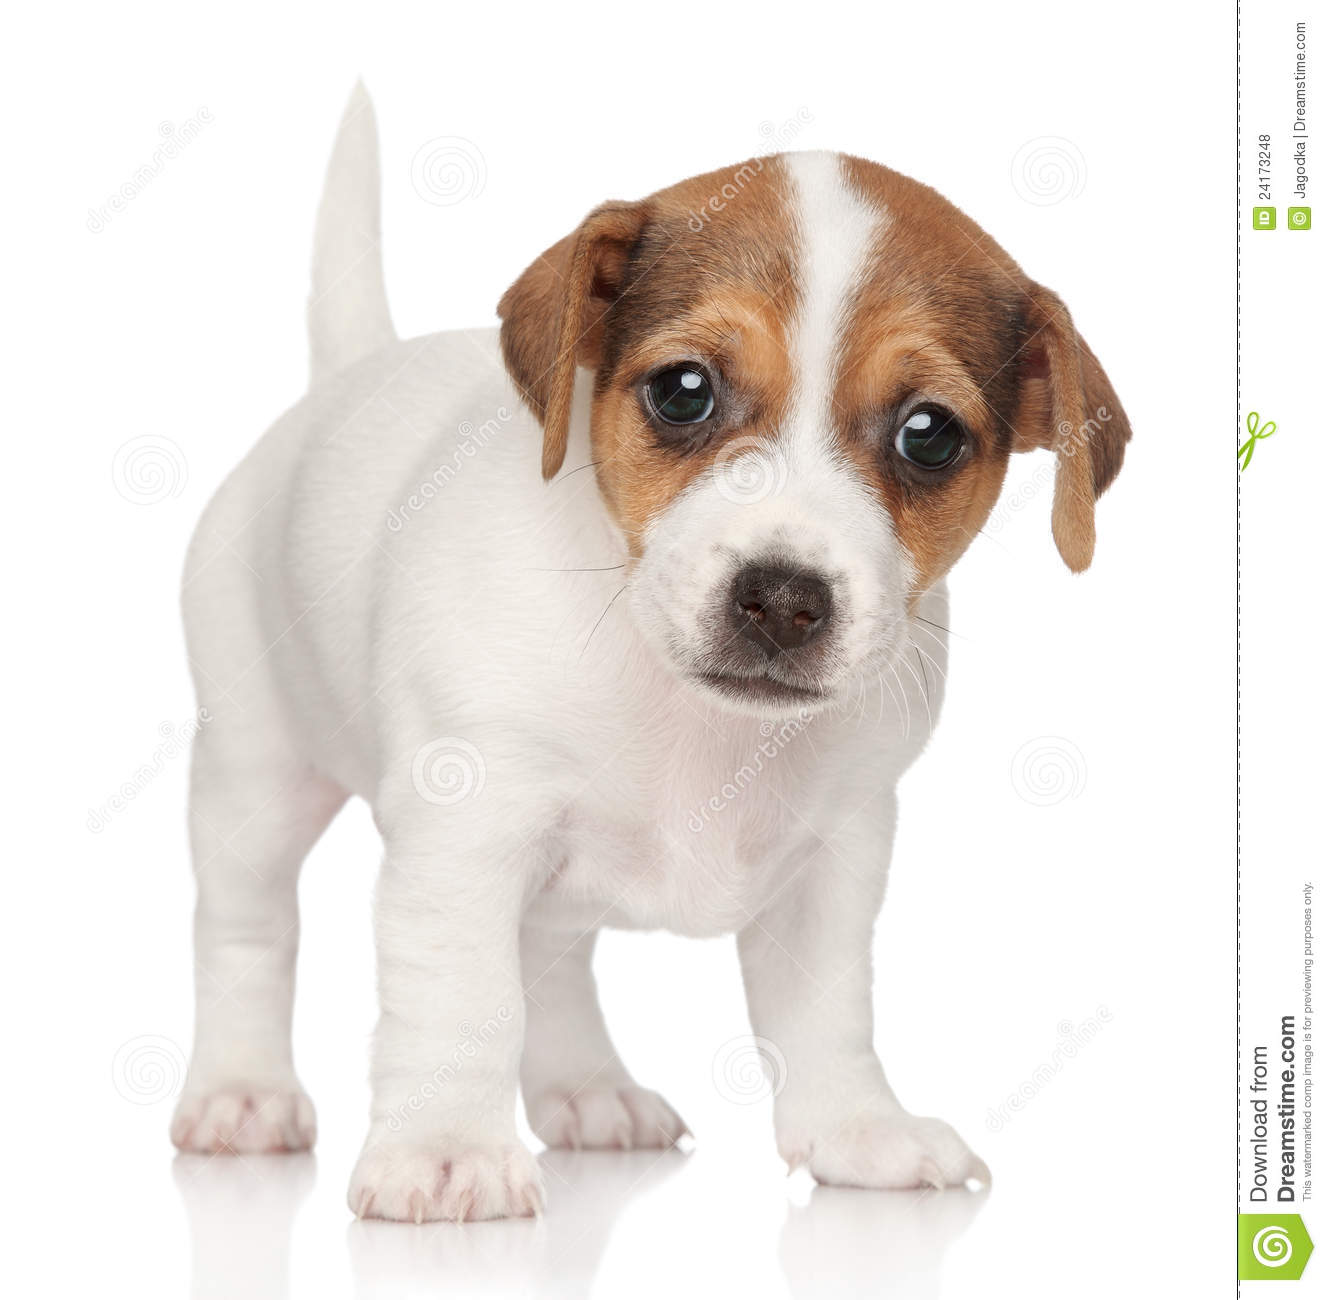 Russell Puppy 1 Month Royalty Free Stock Photos Image 24173248